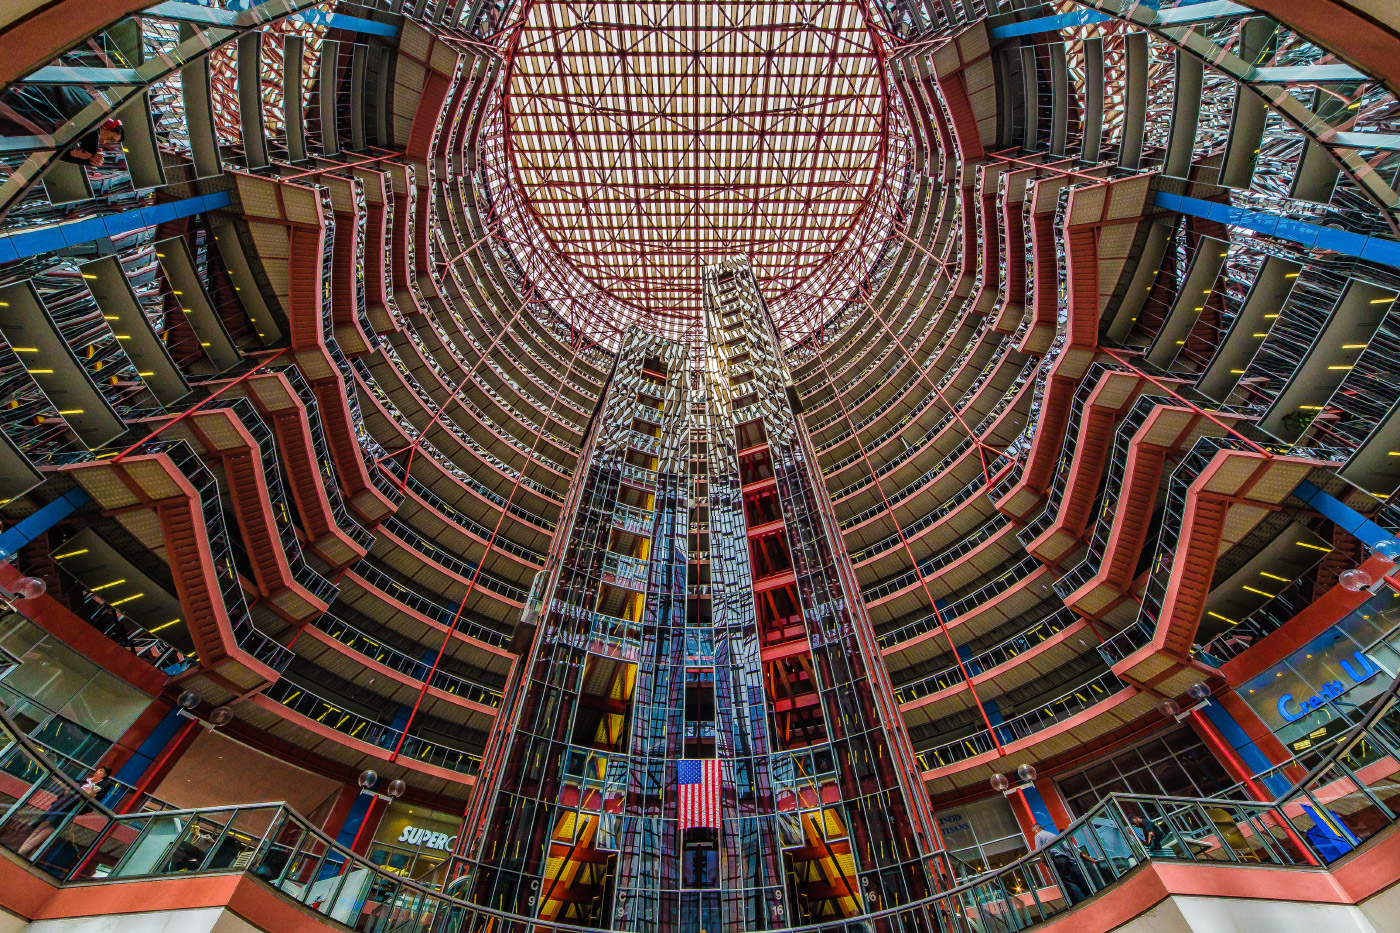 Looking up through the multicolored glass of the Thompson Center atrium